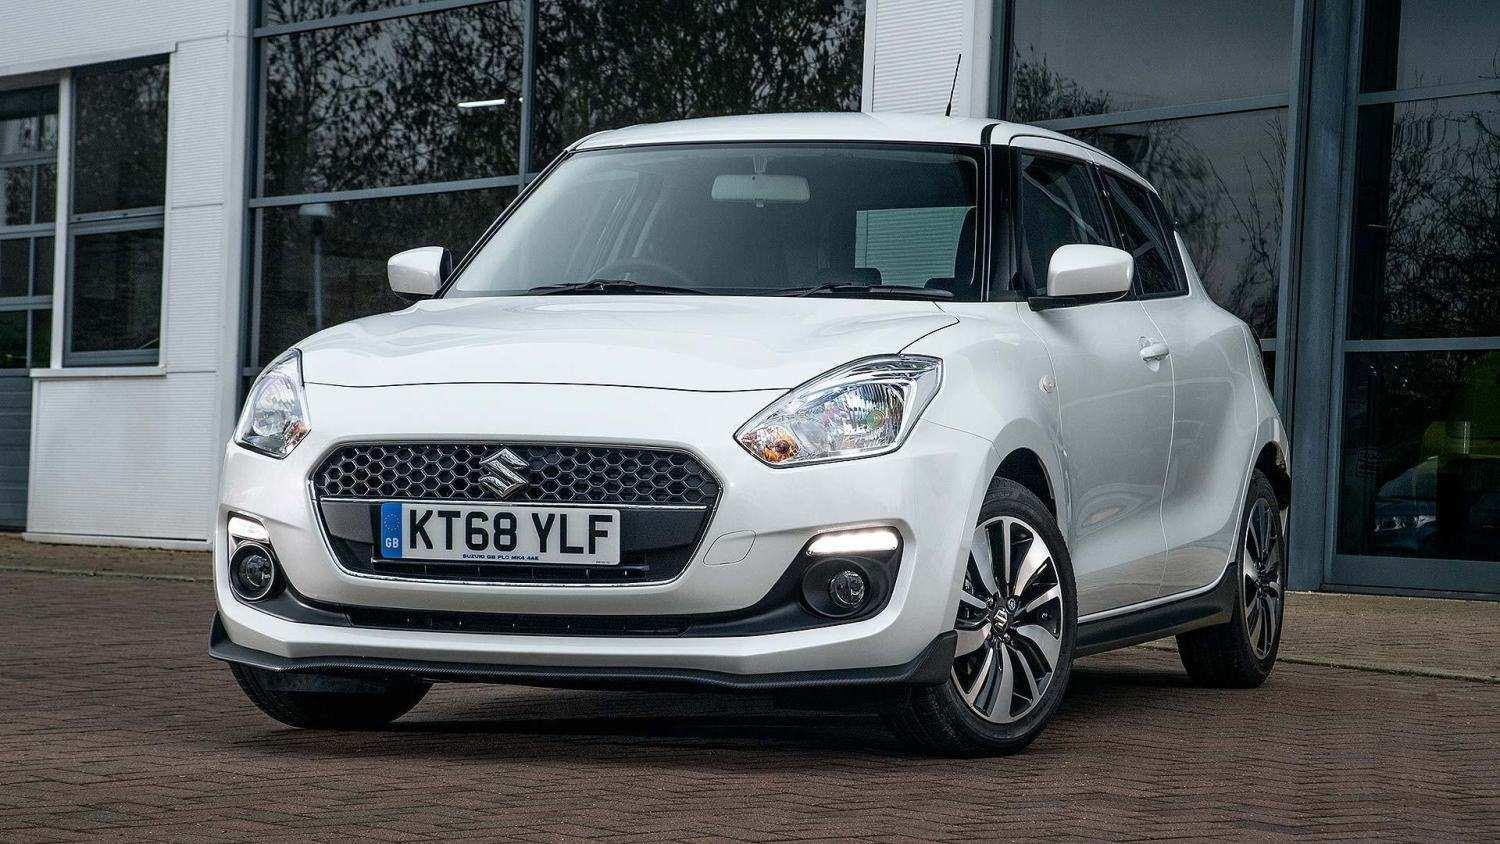 96 The Best 2019 Suzuki Swift Prices